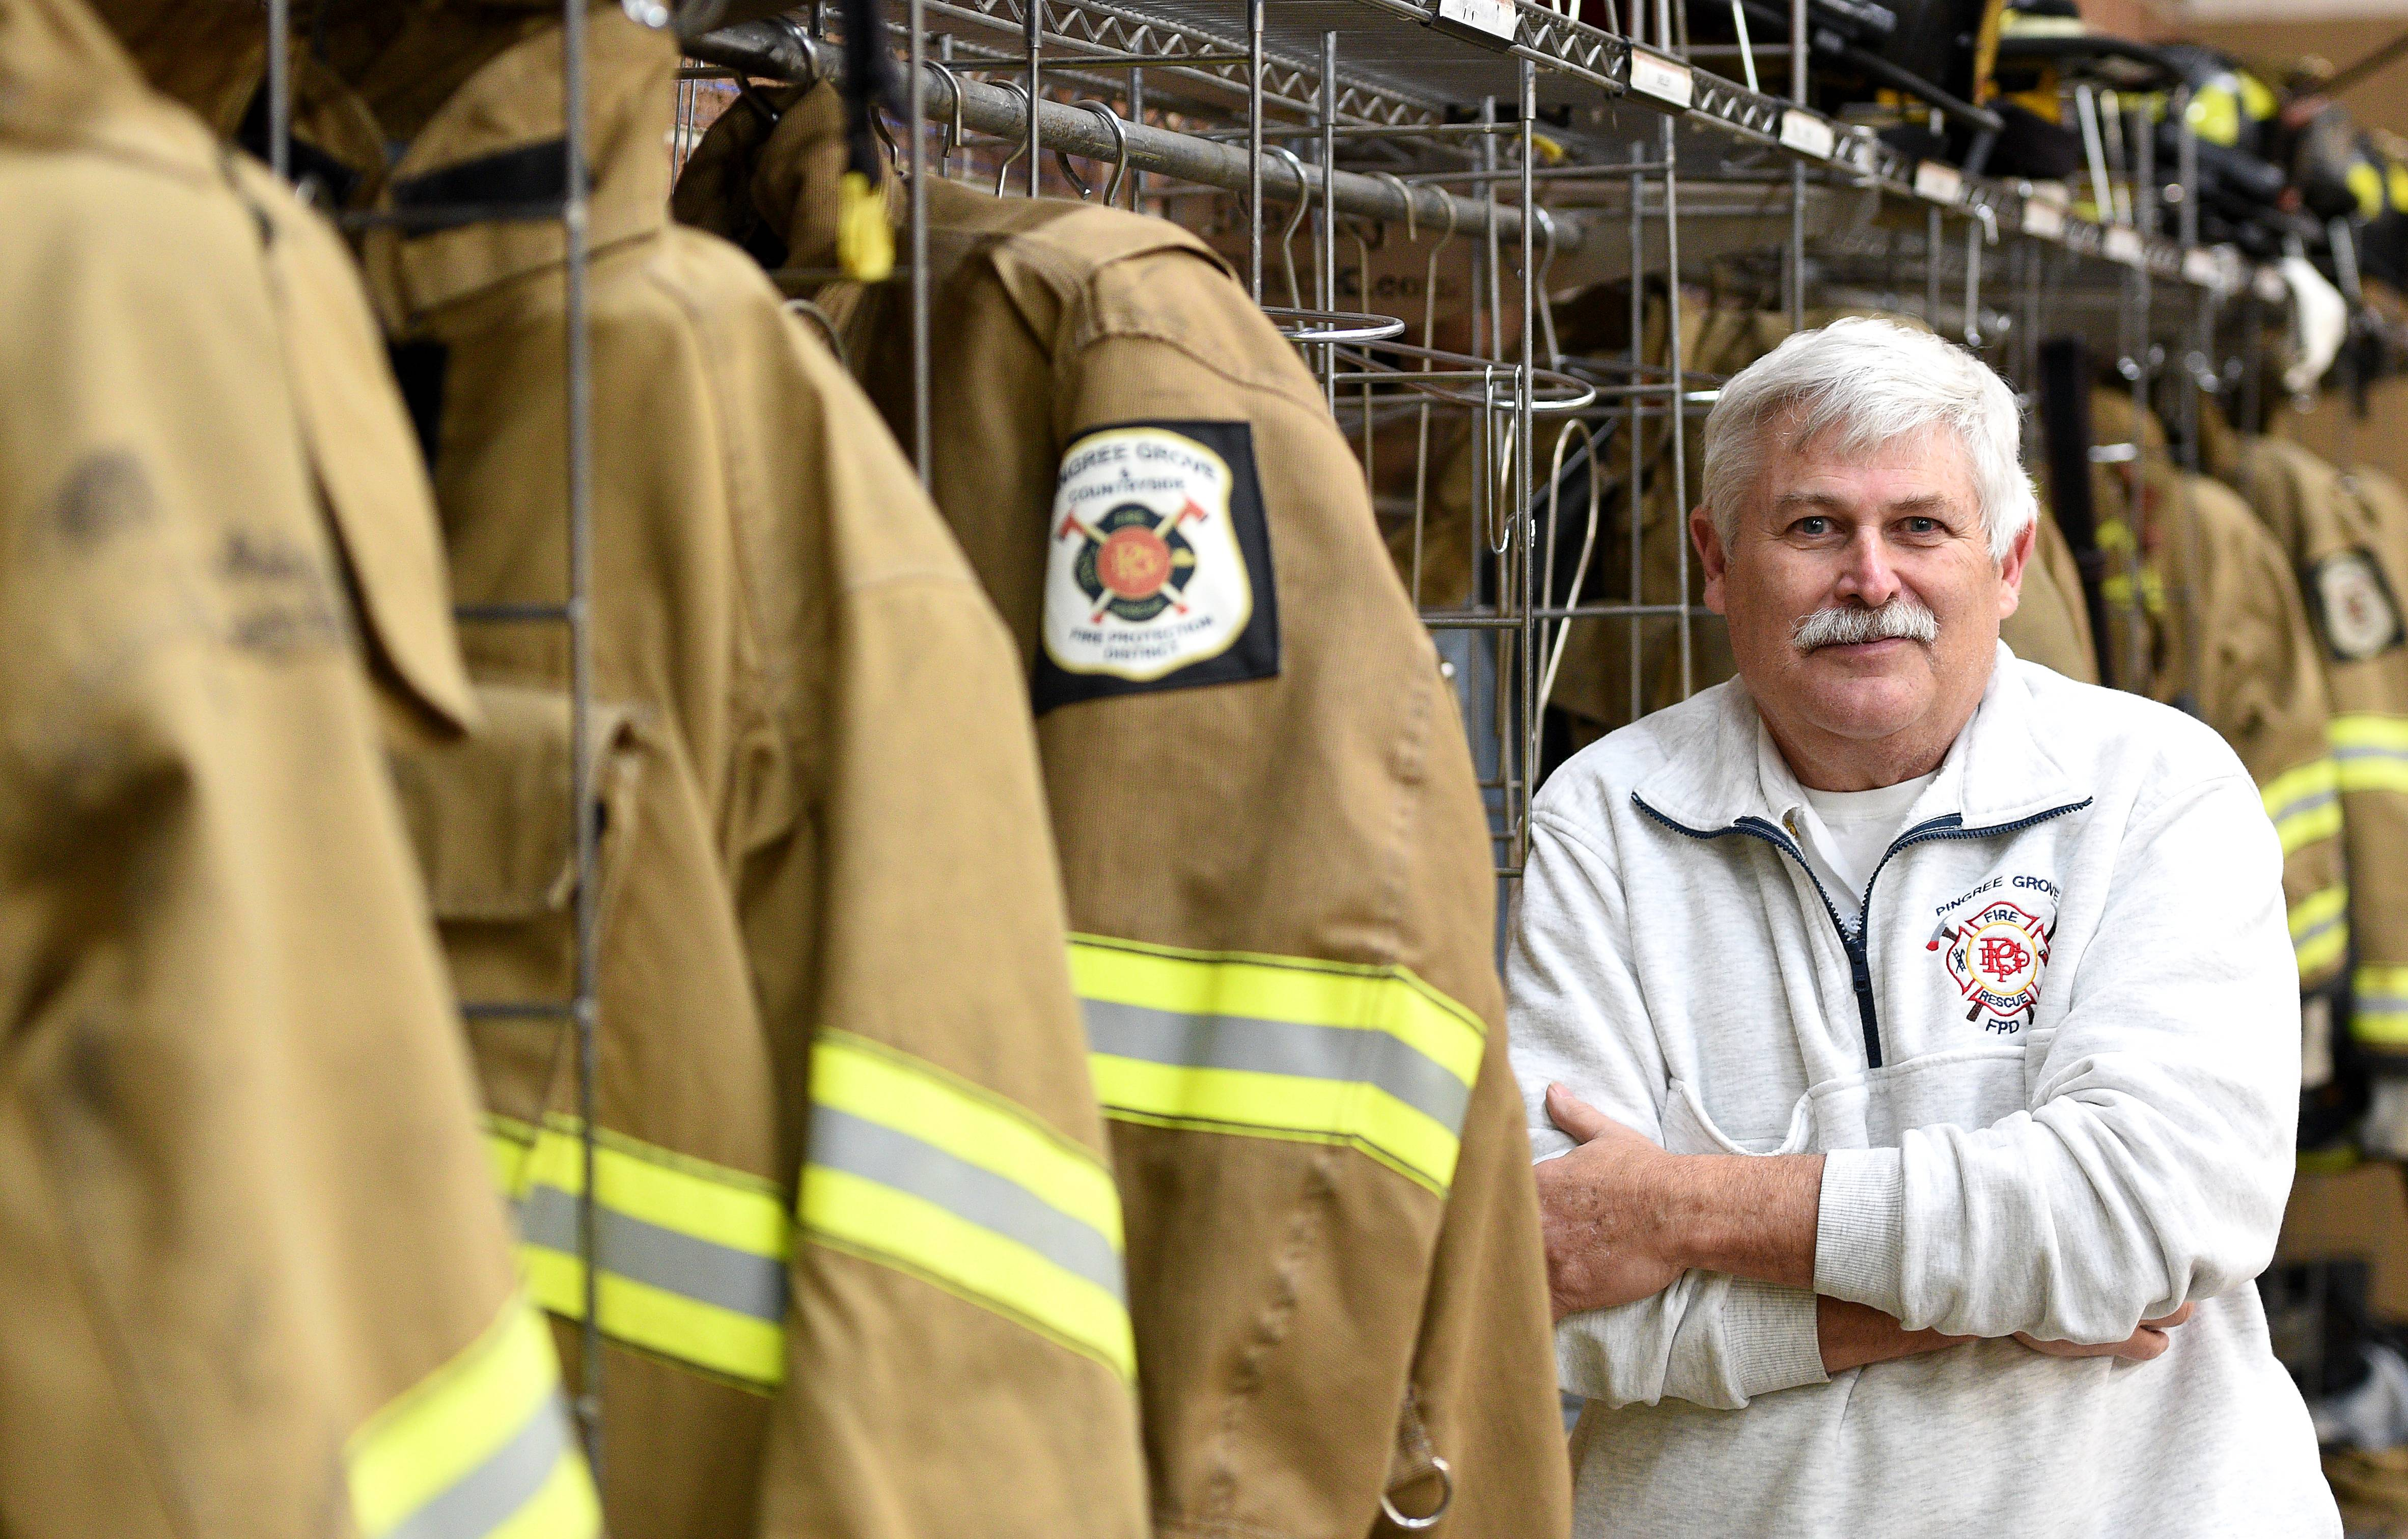 Pingree Grove & Countryside Fire Protection District Chief Mitch Crocetti works full time while getting a pension from his 30-year career with the Wood Dale Fire Department.